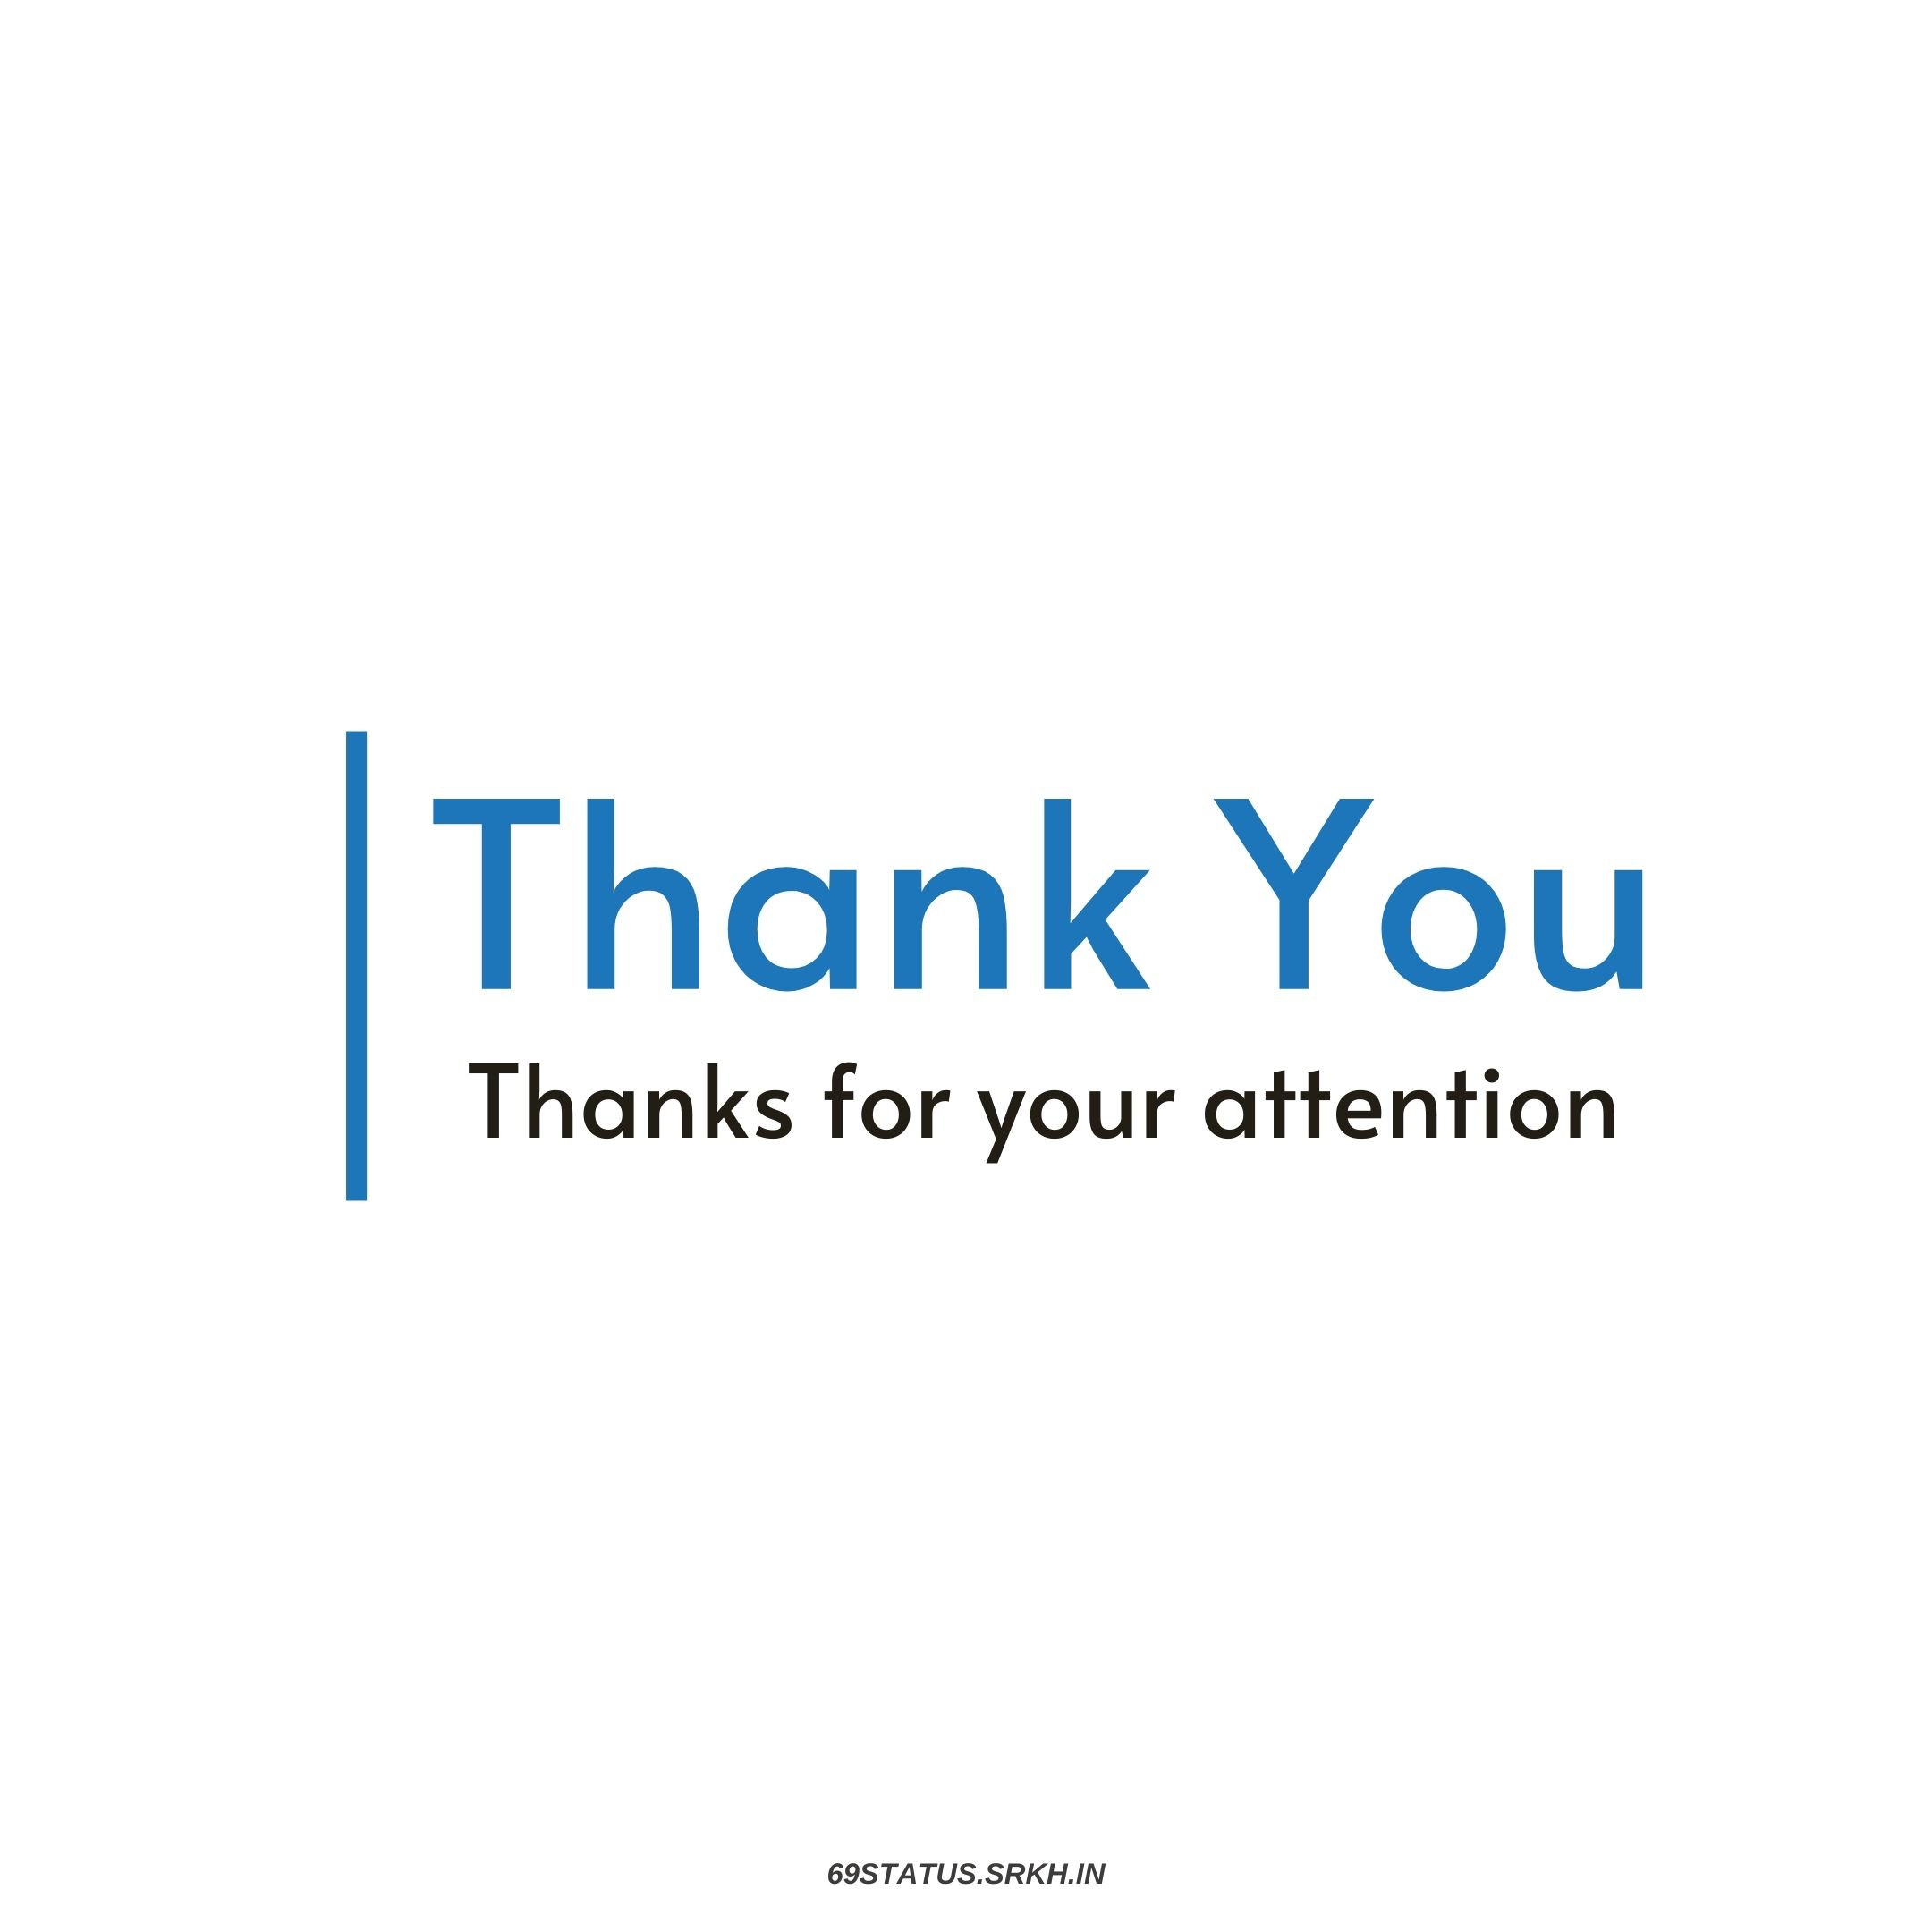 Formal Thank You Images for PPT full HD free download.